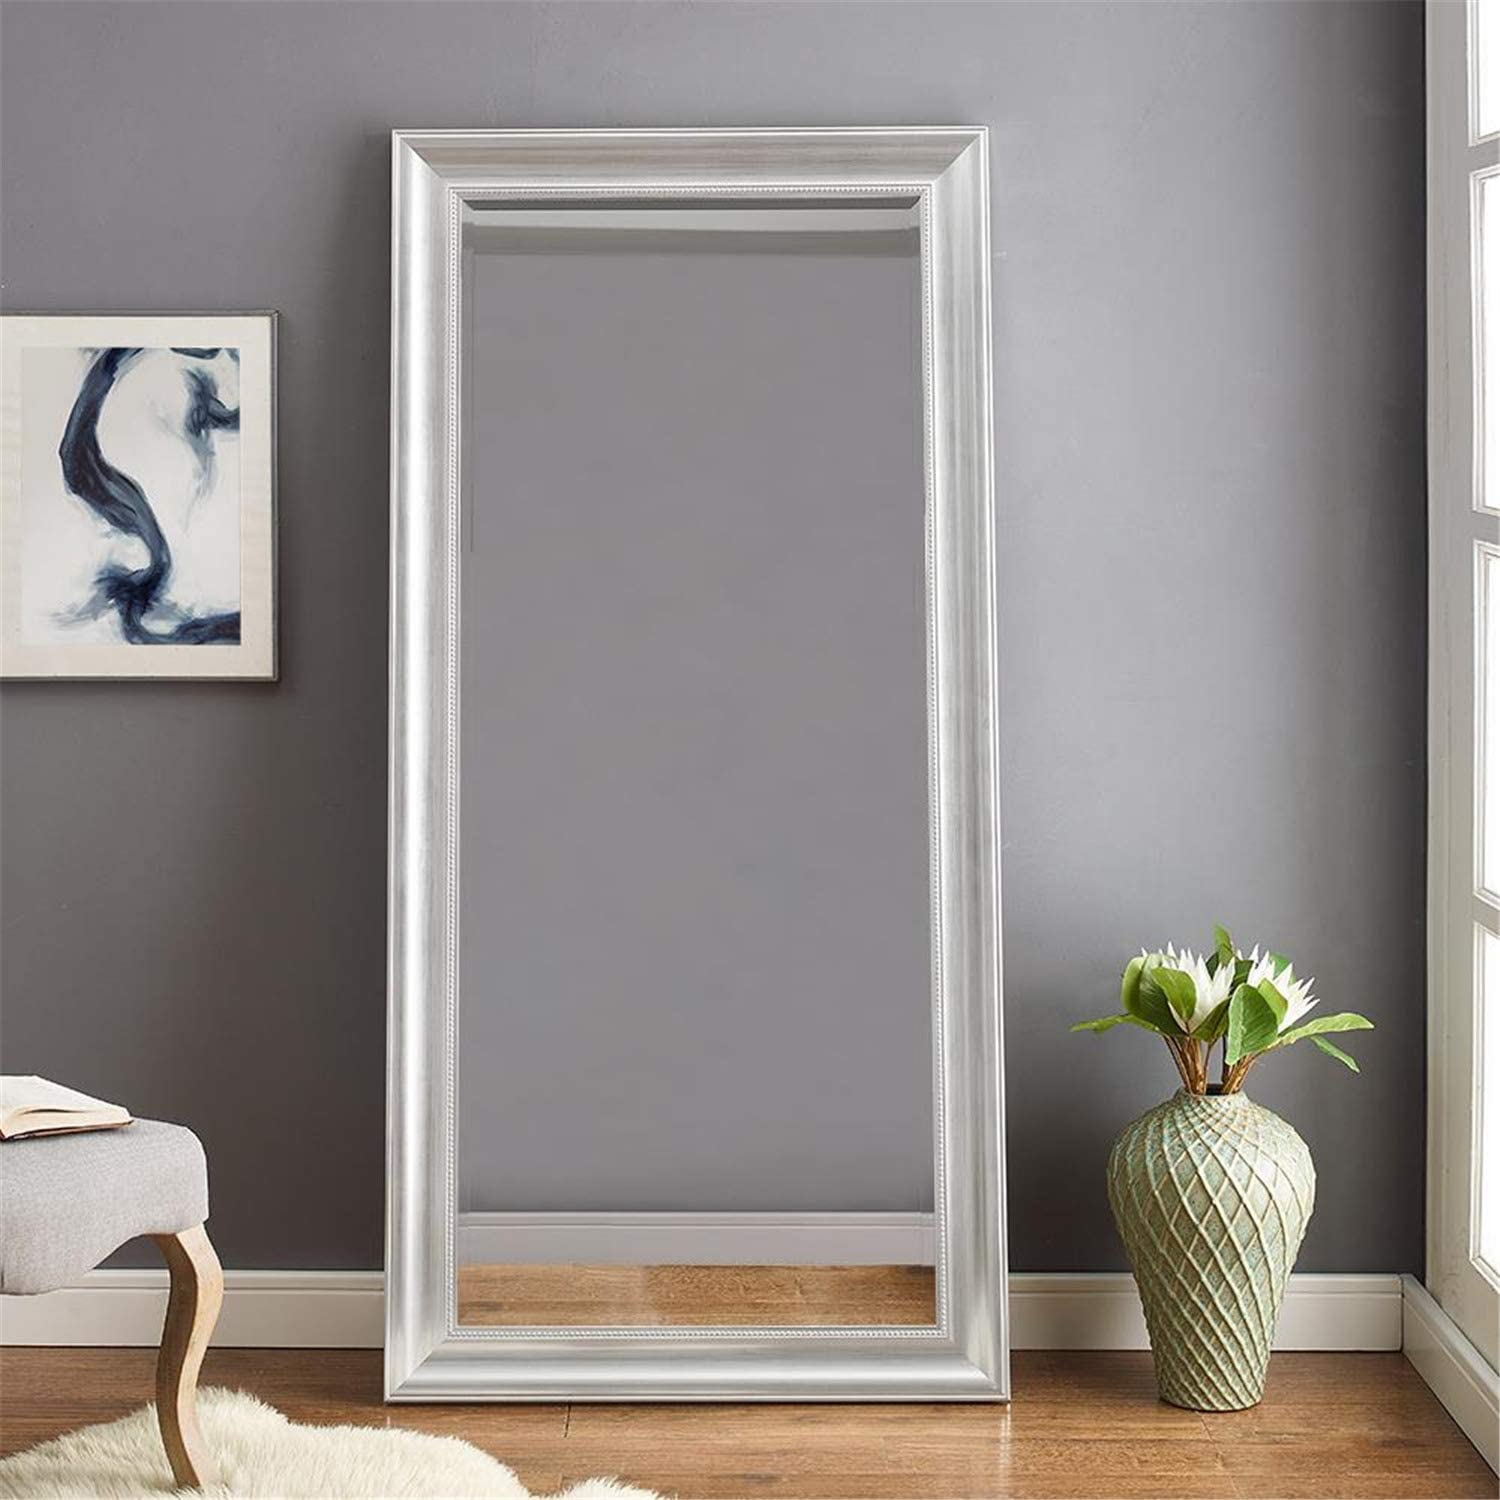 Naomi Home Beaded Framed Leaner Mirror Silver 66 X 32 Furniture Decor